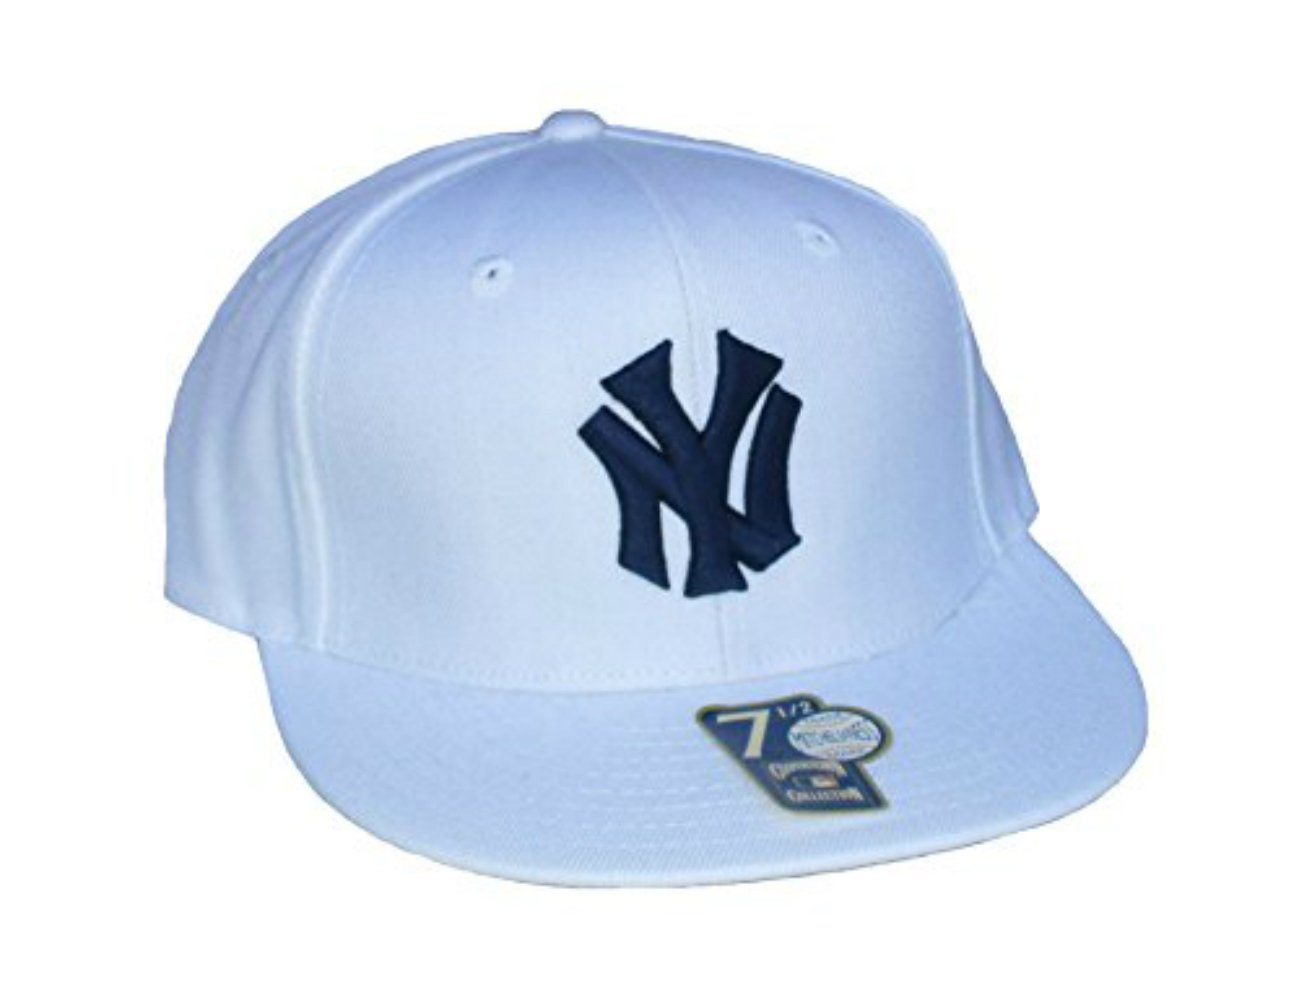 Amazon.com   New York Yankees Fitted Size 7 1 2 White Flat Bill Hat Cap    Sports   Outdoors 1695876b59f